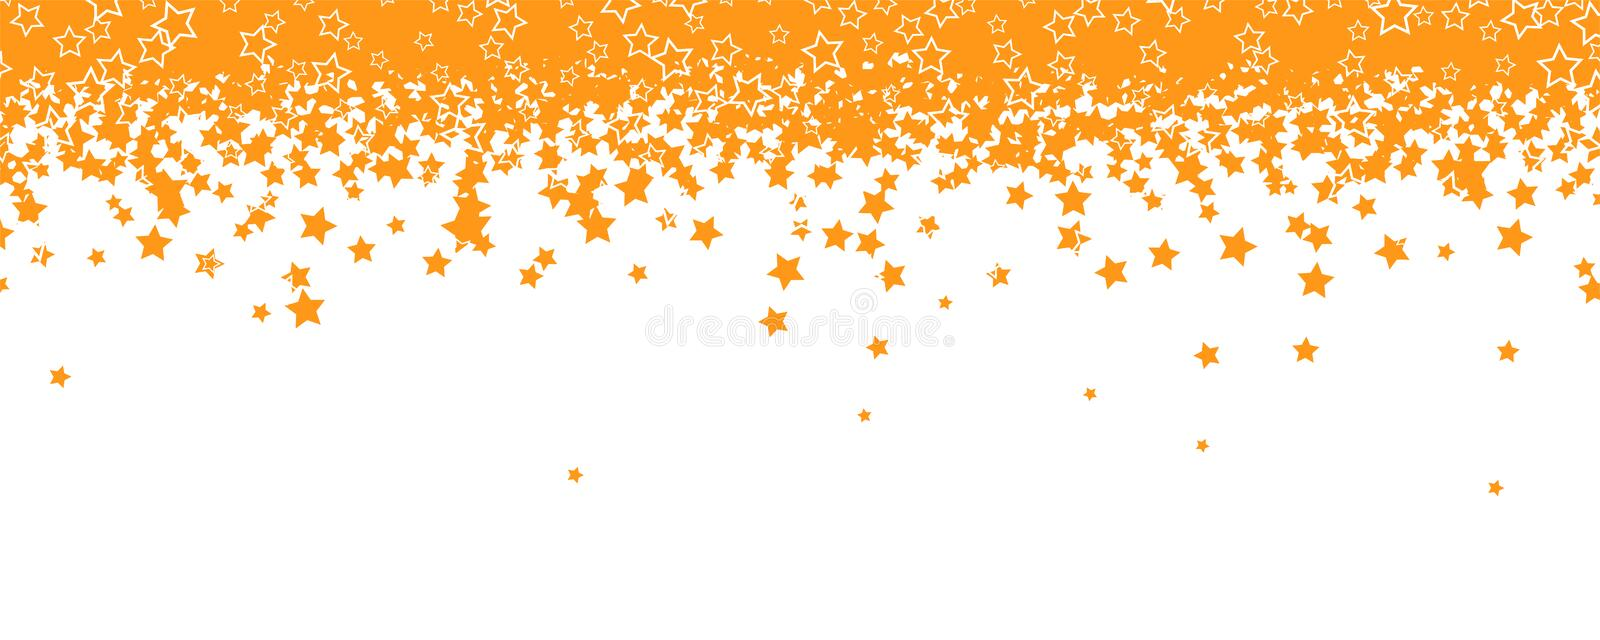 Yellow stars are falling down like snowfall or rain. Decoration for holidays of Christmas, Fathers days. Abstract stock illustration